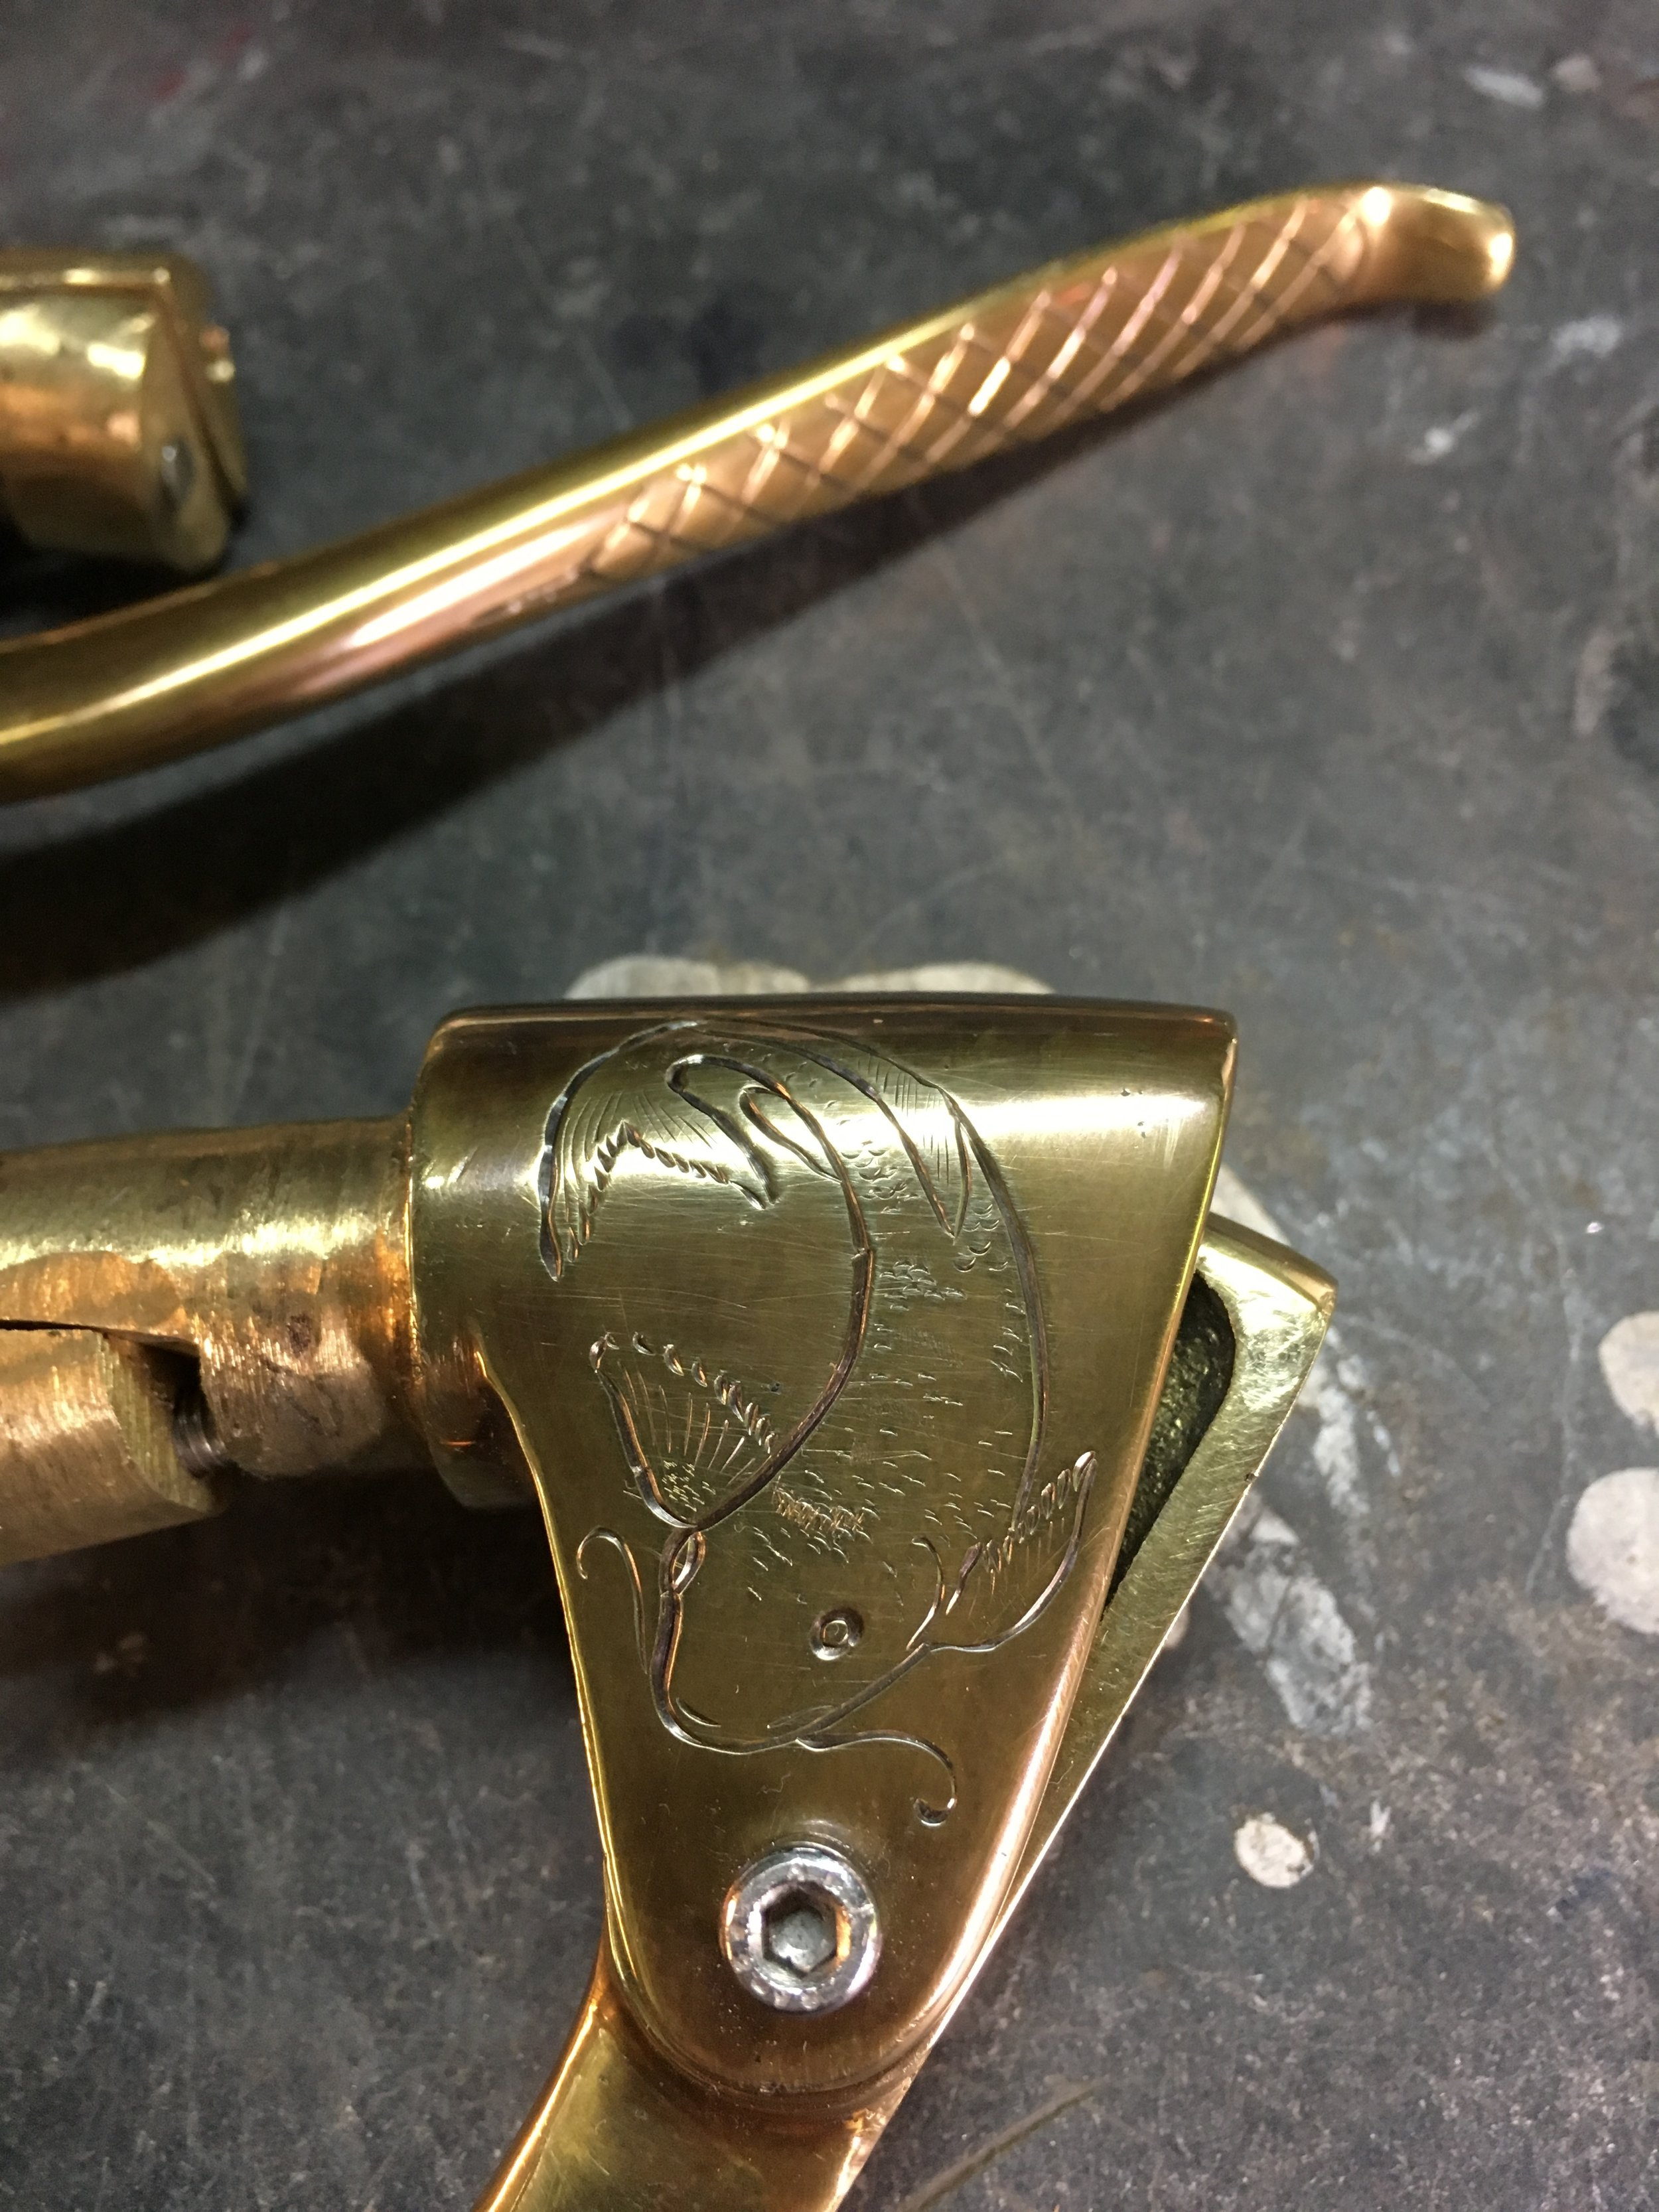 """A Japanese Koi fish on the clutch lever perch. The fish is my personal symbol, explained in the """"about"""" section of this site."""